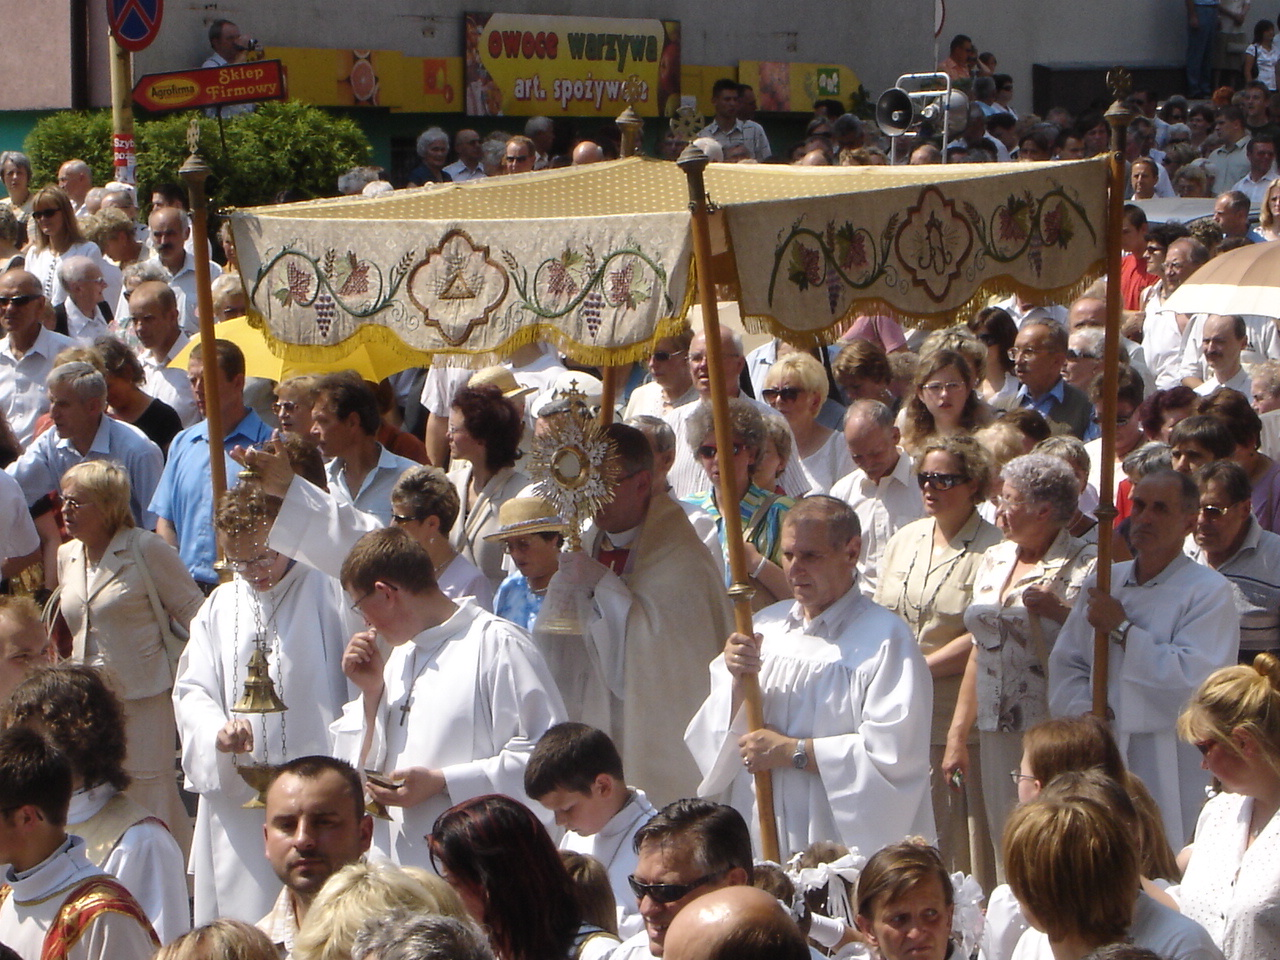 The Blessed Sacrament exposed in procession in Poland